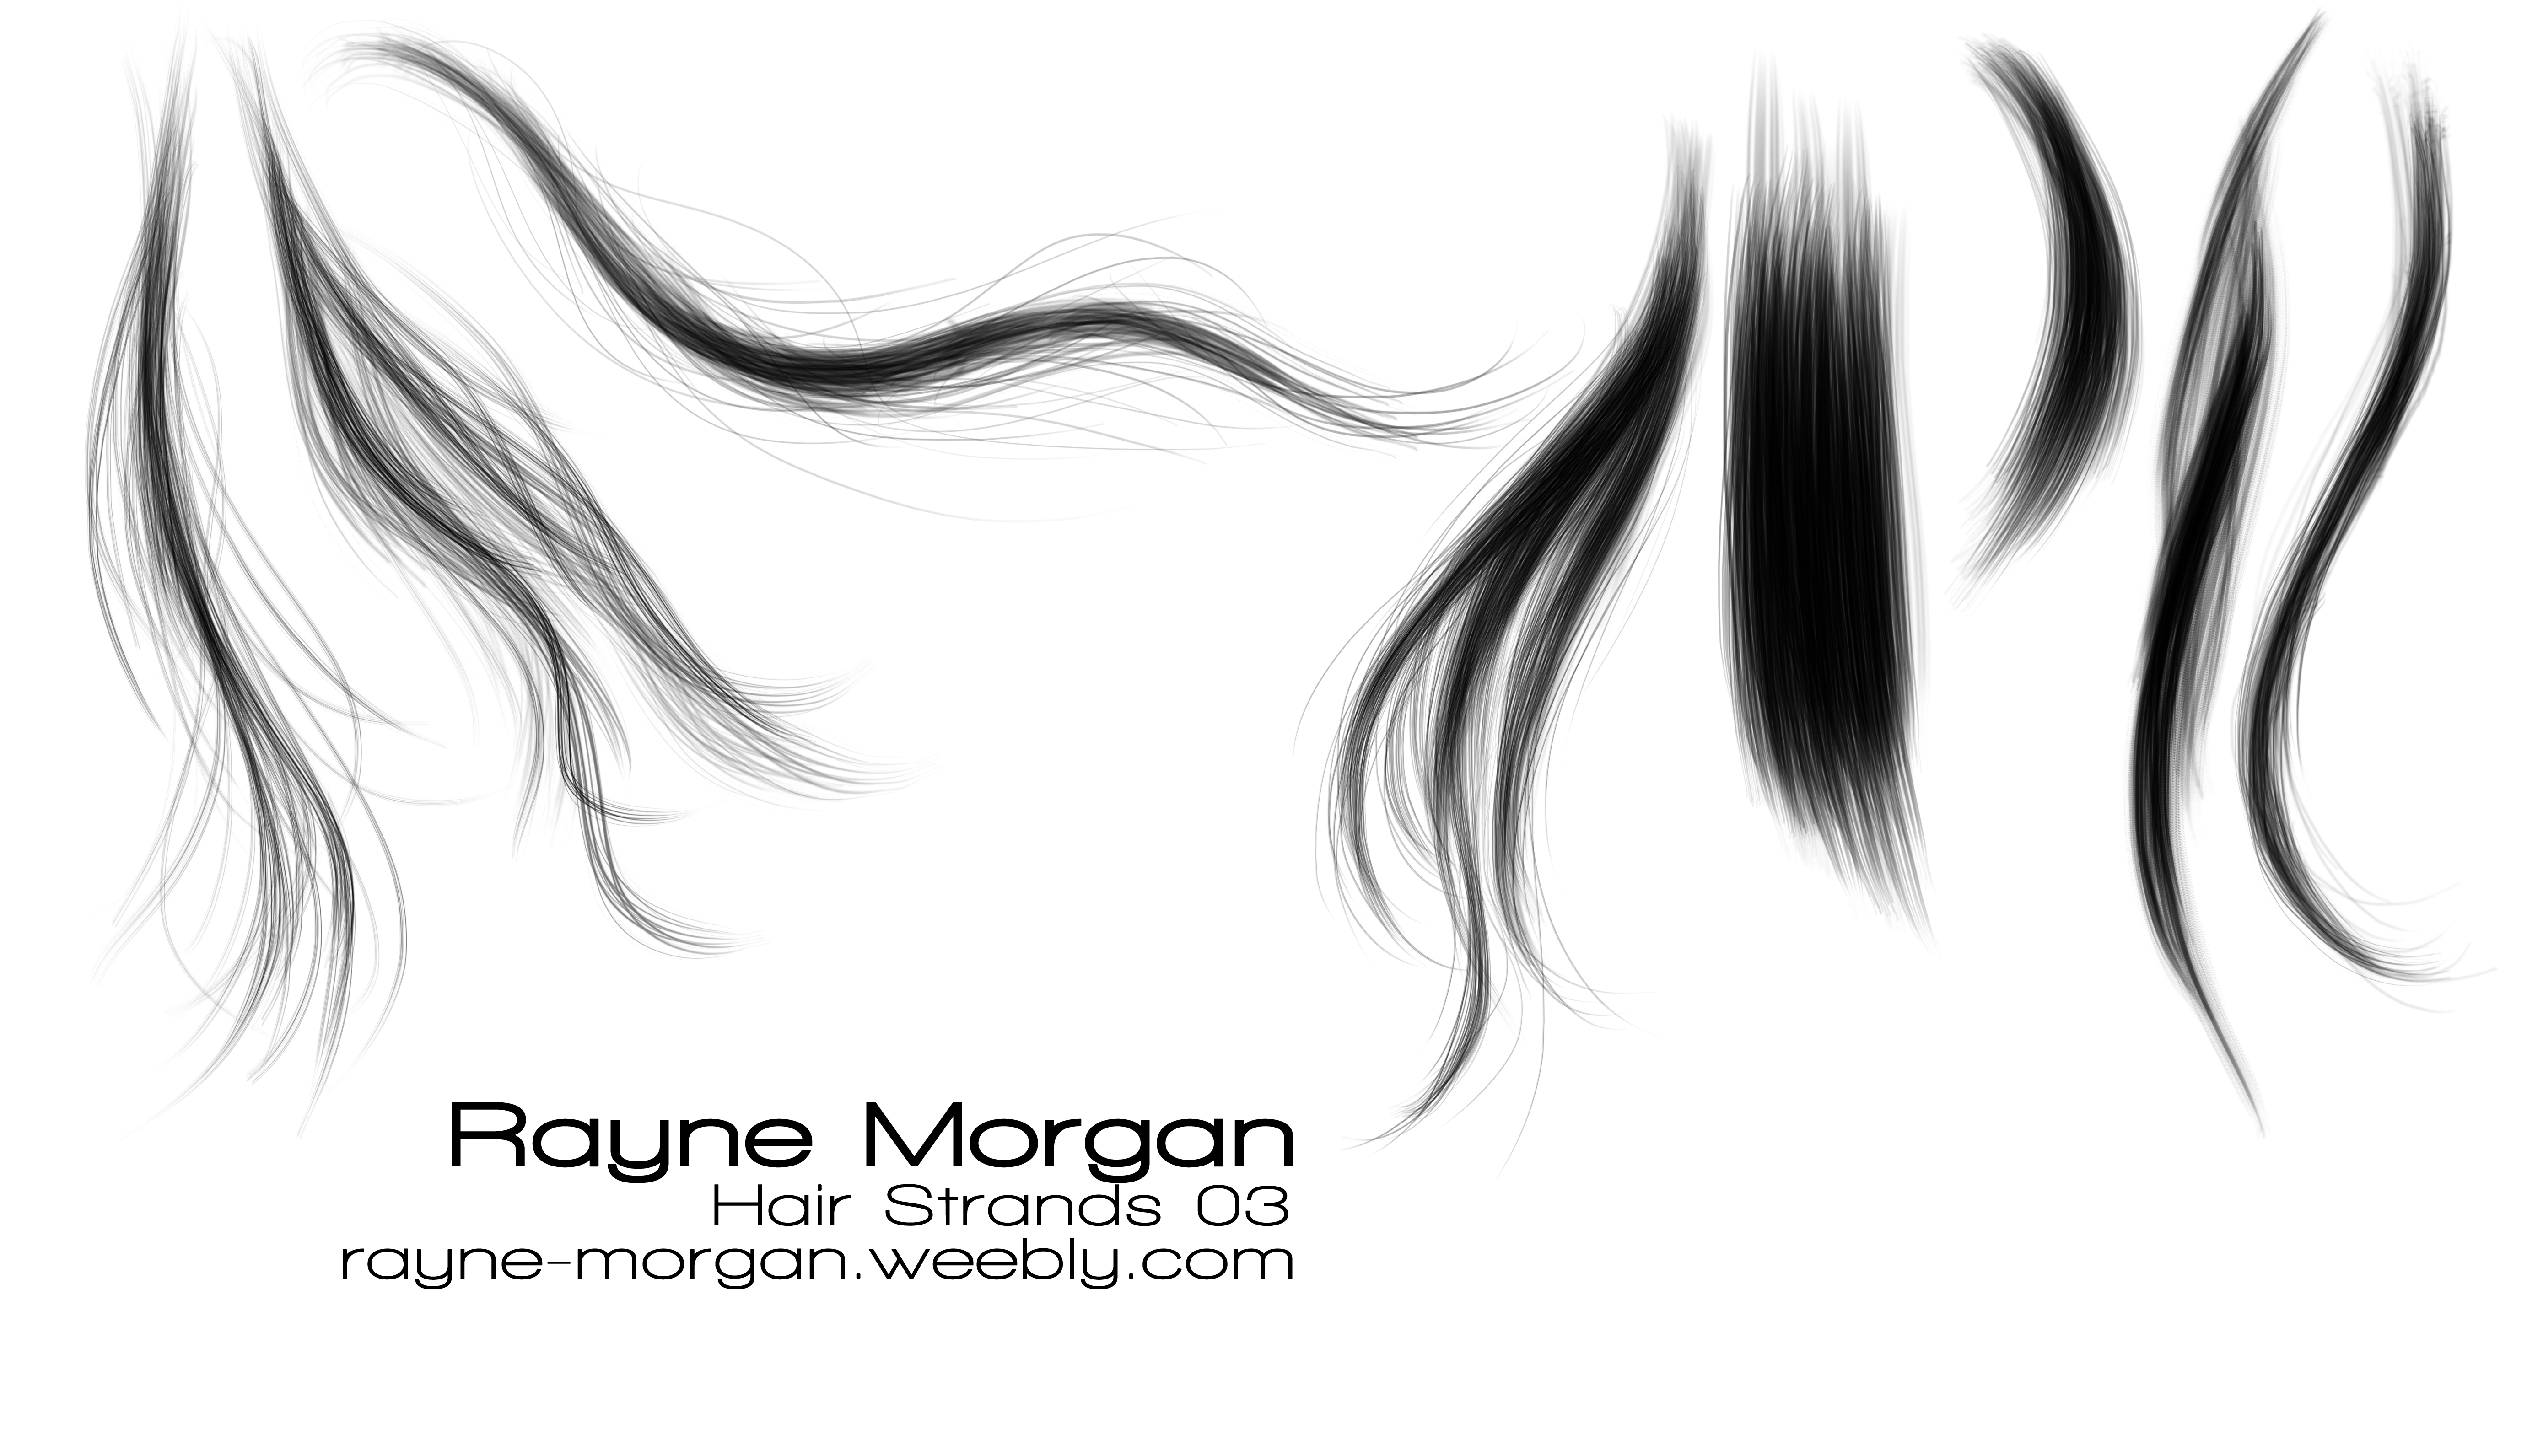 RayneMorgan 118 25 RM - Hair Strands 03 By RayneMorgan - Hair PNG